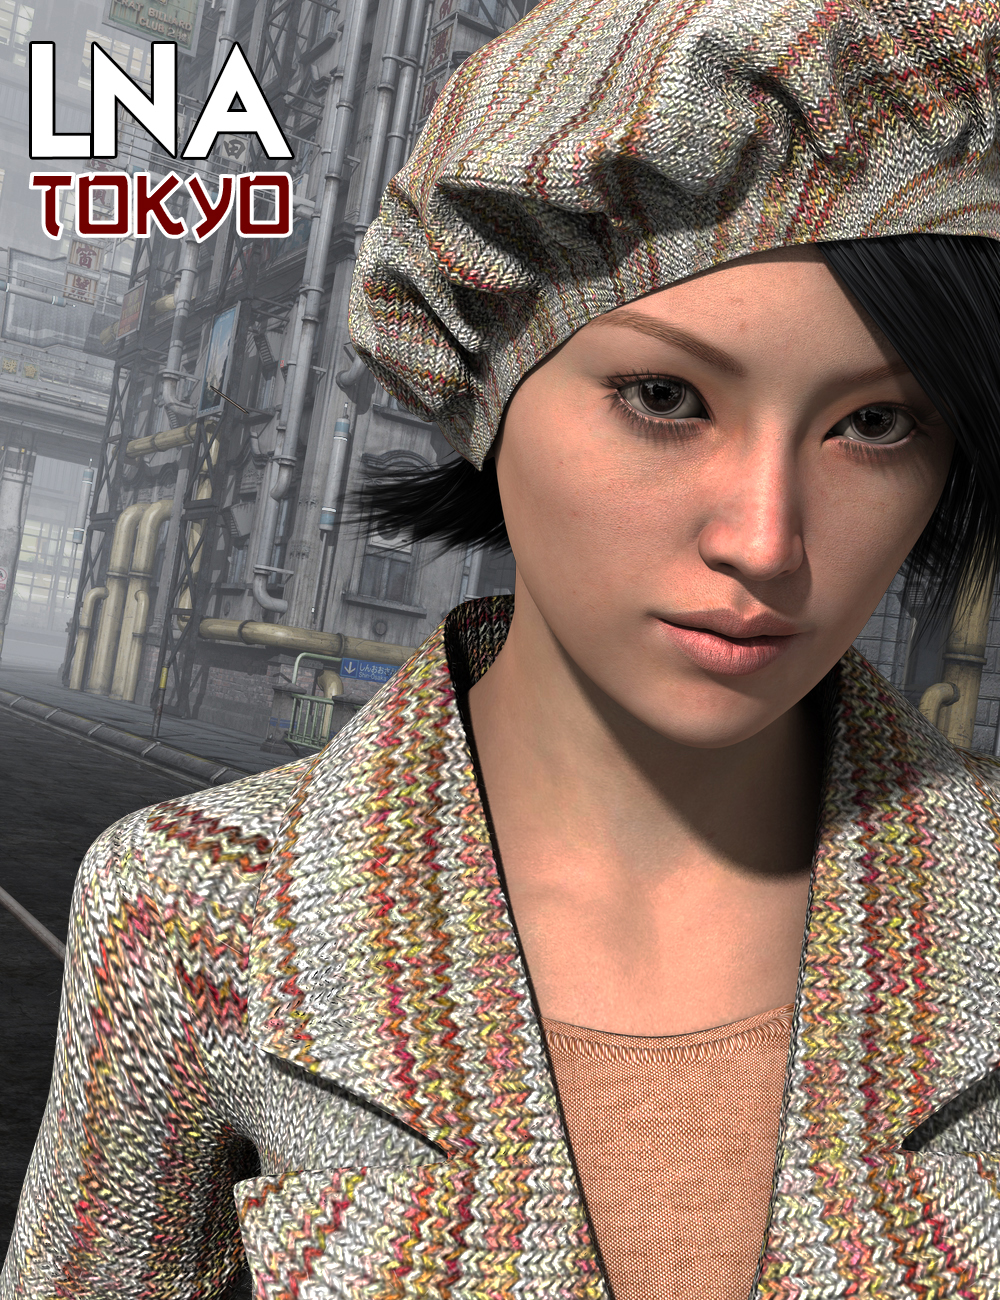 LNA Tokyo for Genesis 2 Female(s) by: Luthbellina, 3D Models by Daz 3D